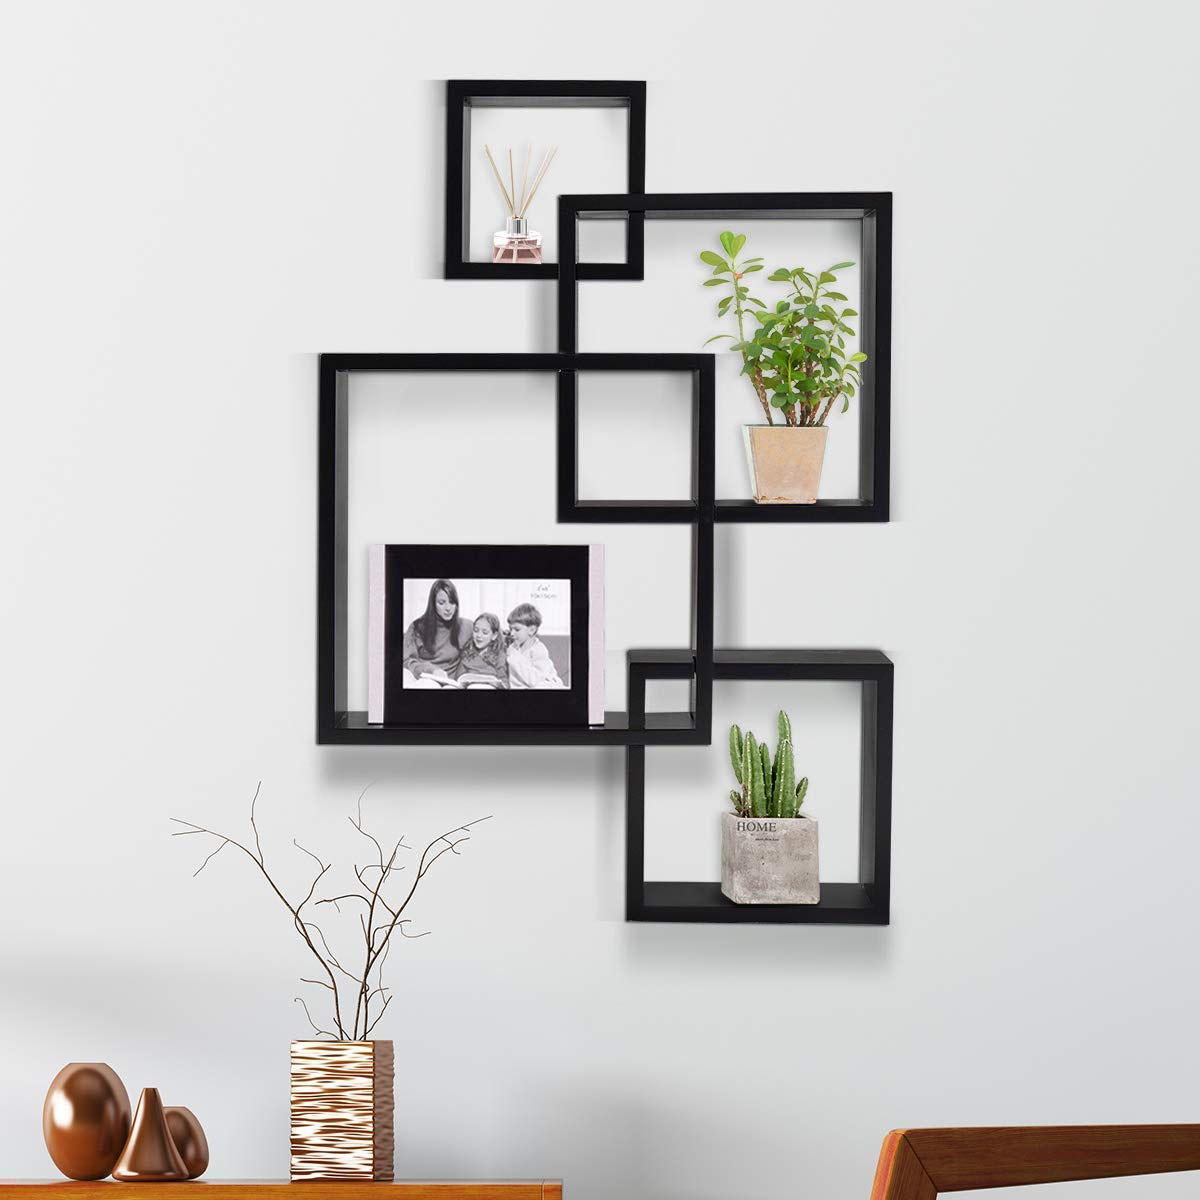 Kundi Intersecting Floating Shelves 4 Cube Square Wall Mounted Shelves Wood Home Furniture Accent Decorative Wall Shelf Black 47 Cm X 10 Cm X 65 Cm Black Modern7 Buy Online In Austria